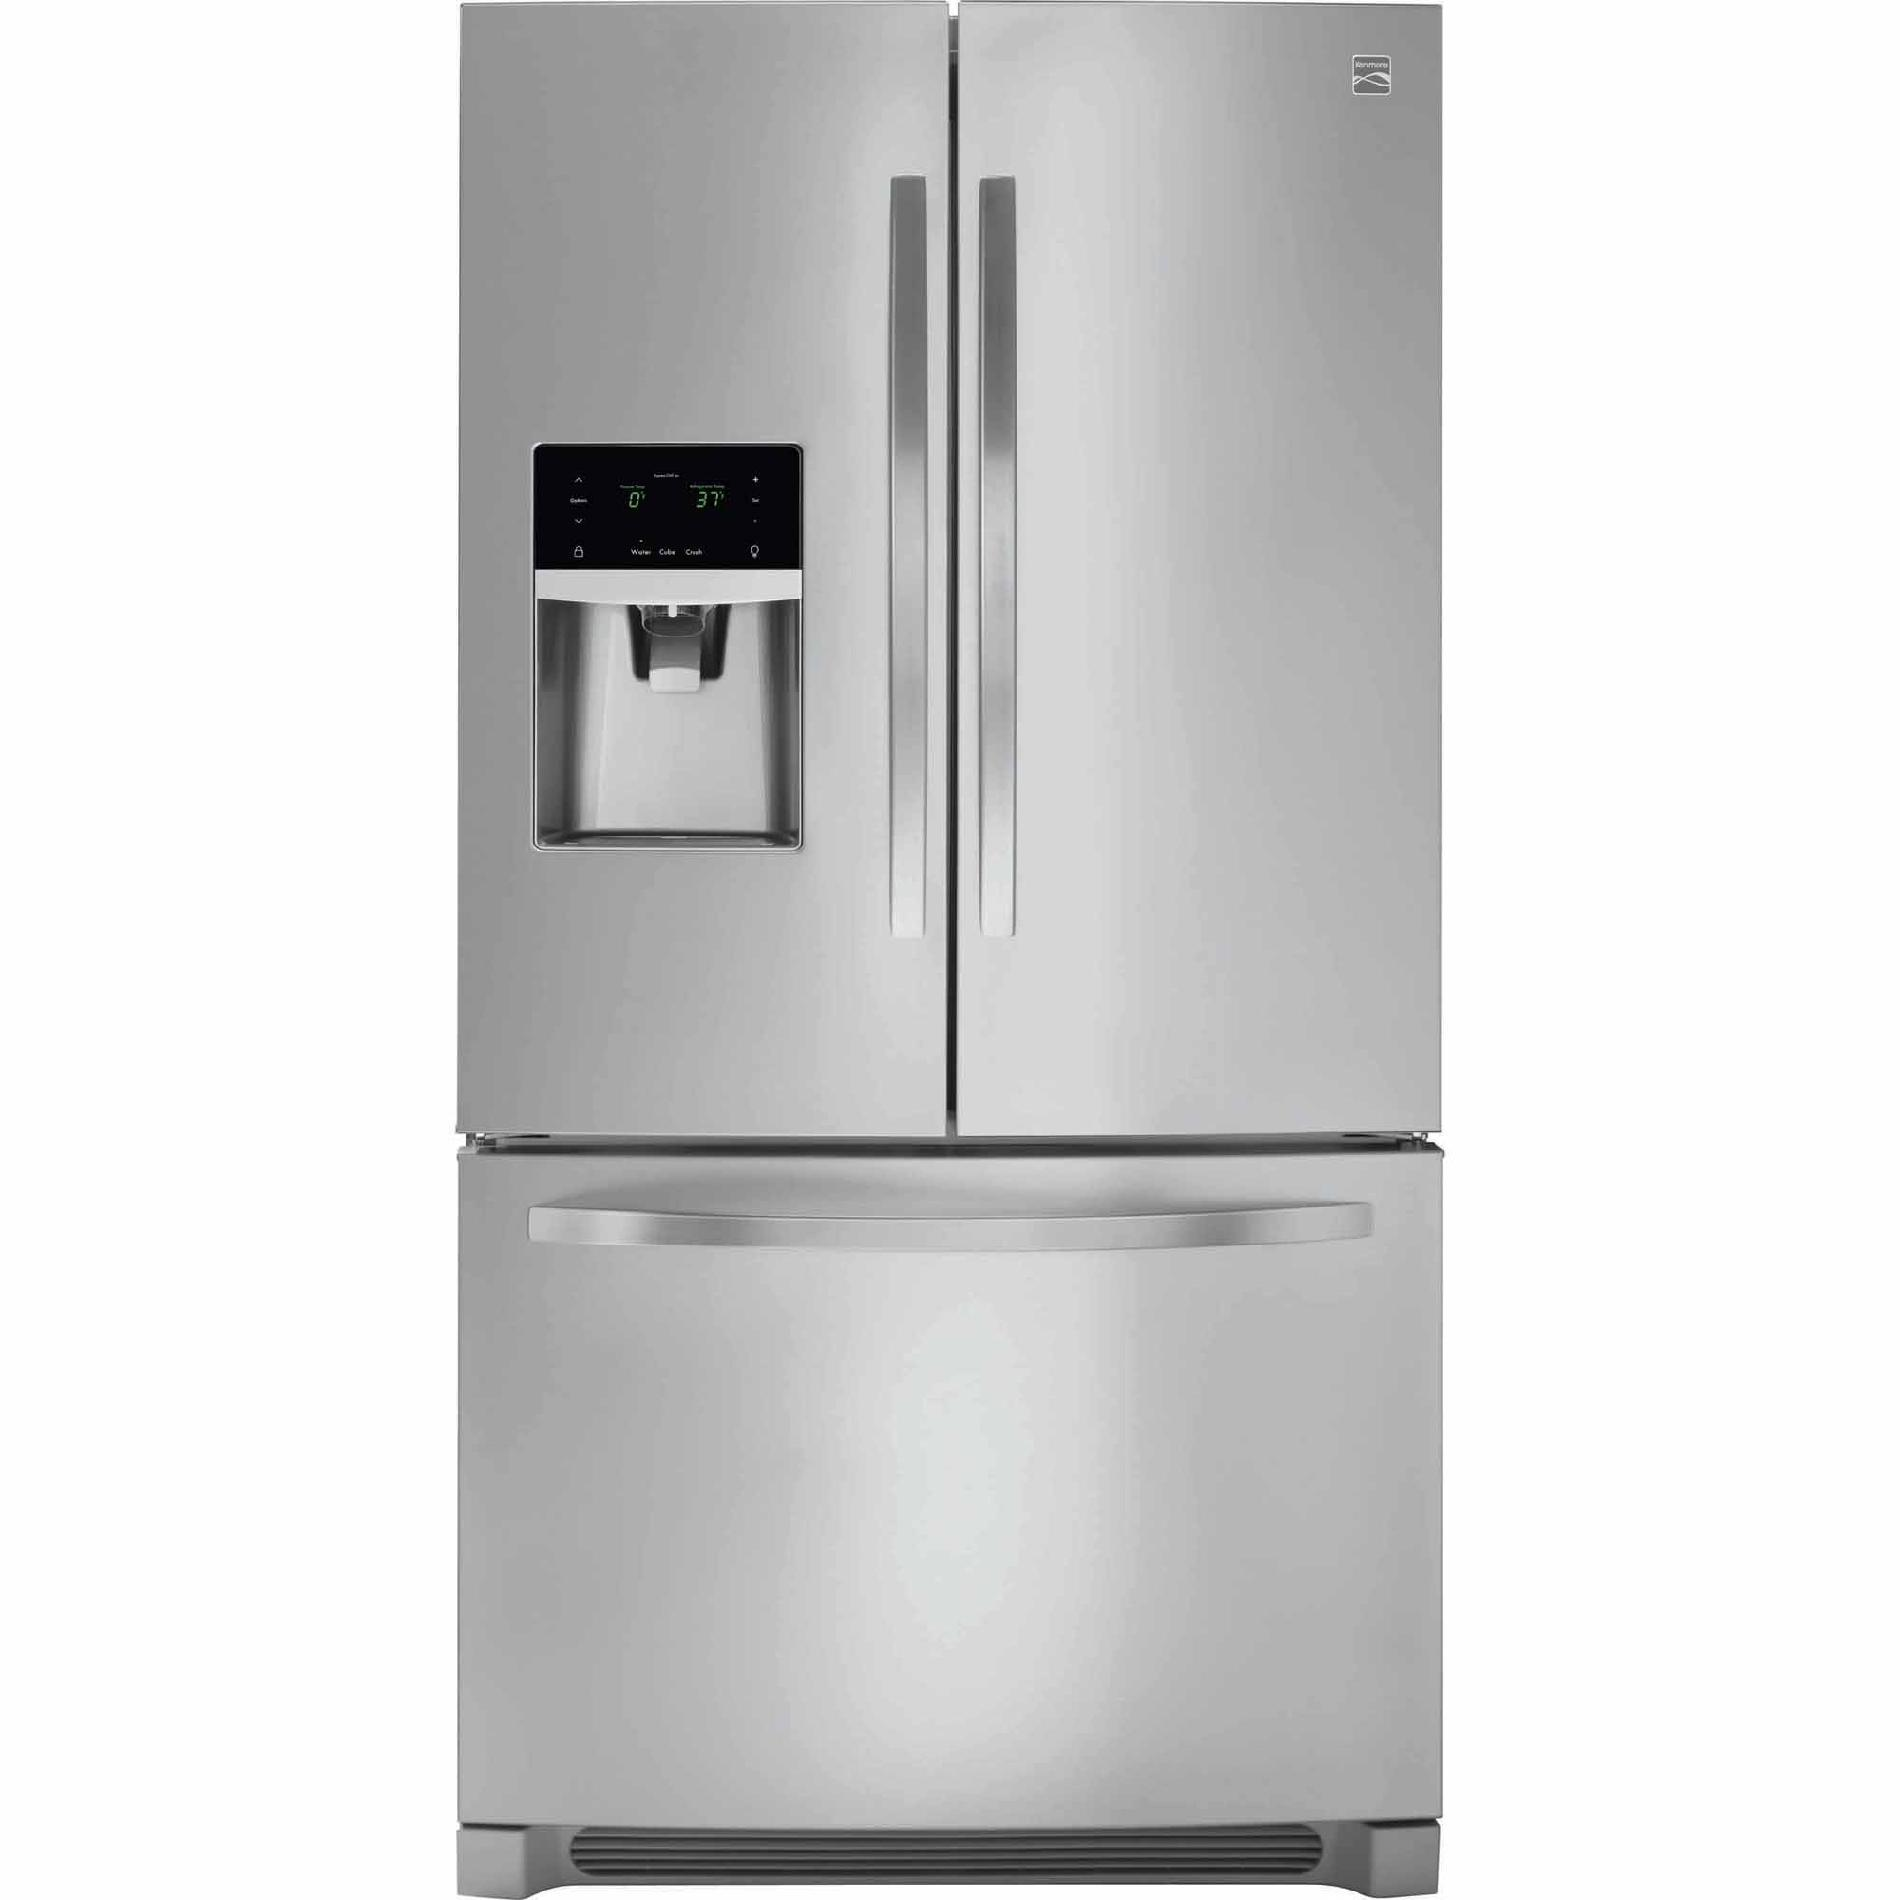 Kenmore - 70443 - 21.9 cu. ft. French Door Refrigerator - Stainless ...